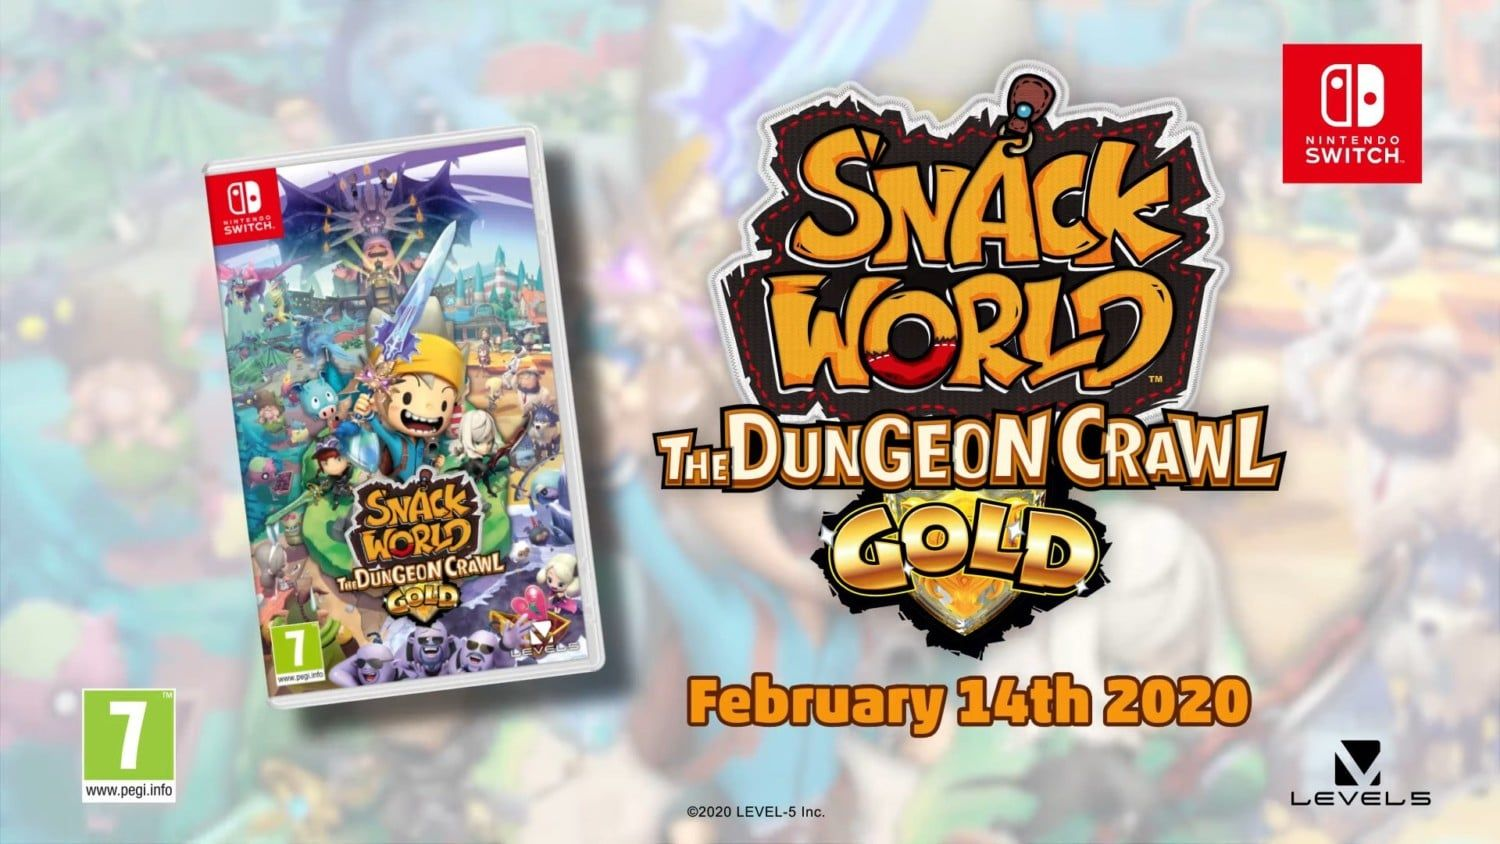 Xbox Games With Gold February 2020.Snack World The Dungeon Crawl Gold Officially Announced